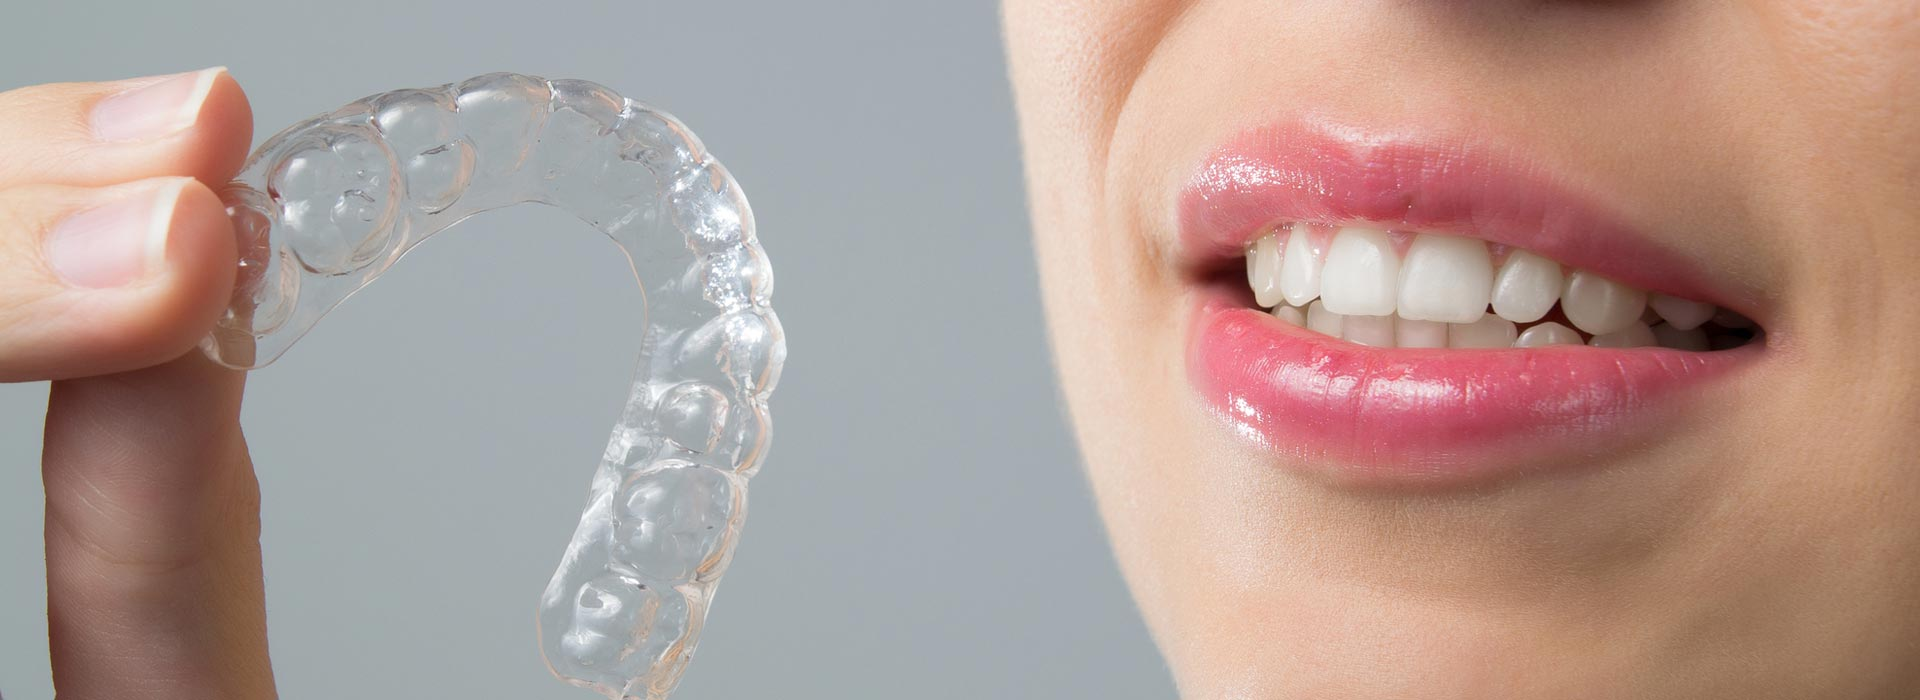 A woman holding a orthodontic clear aligner